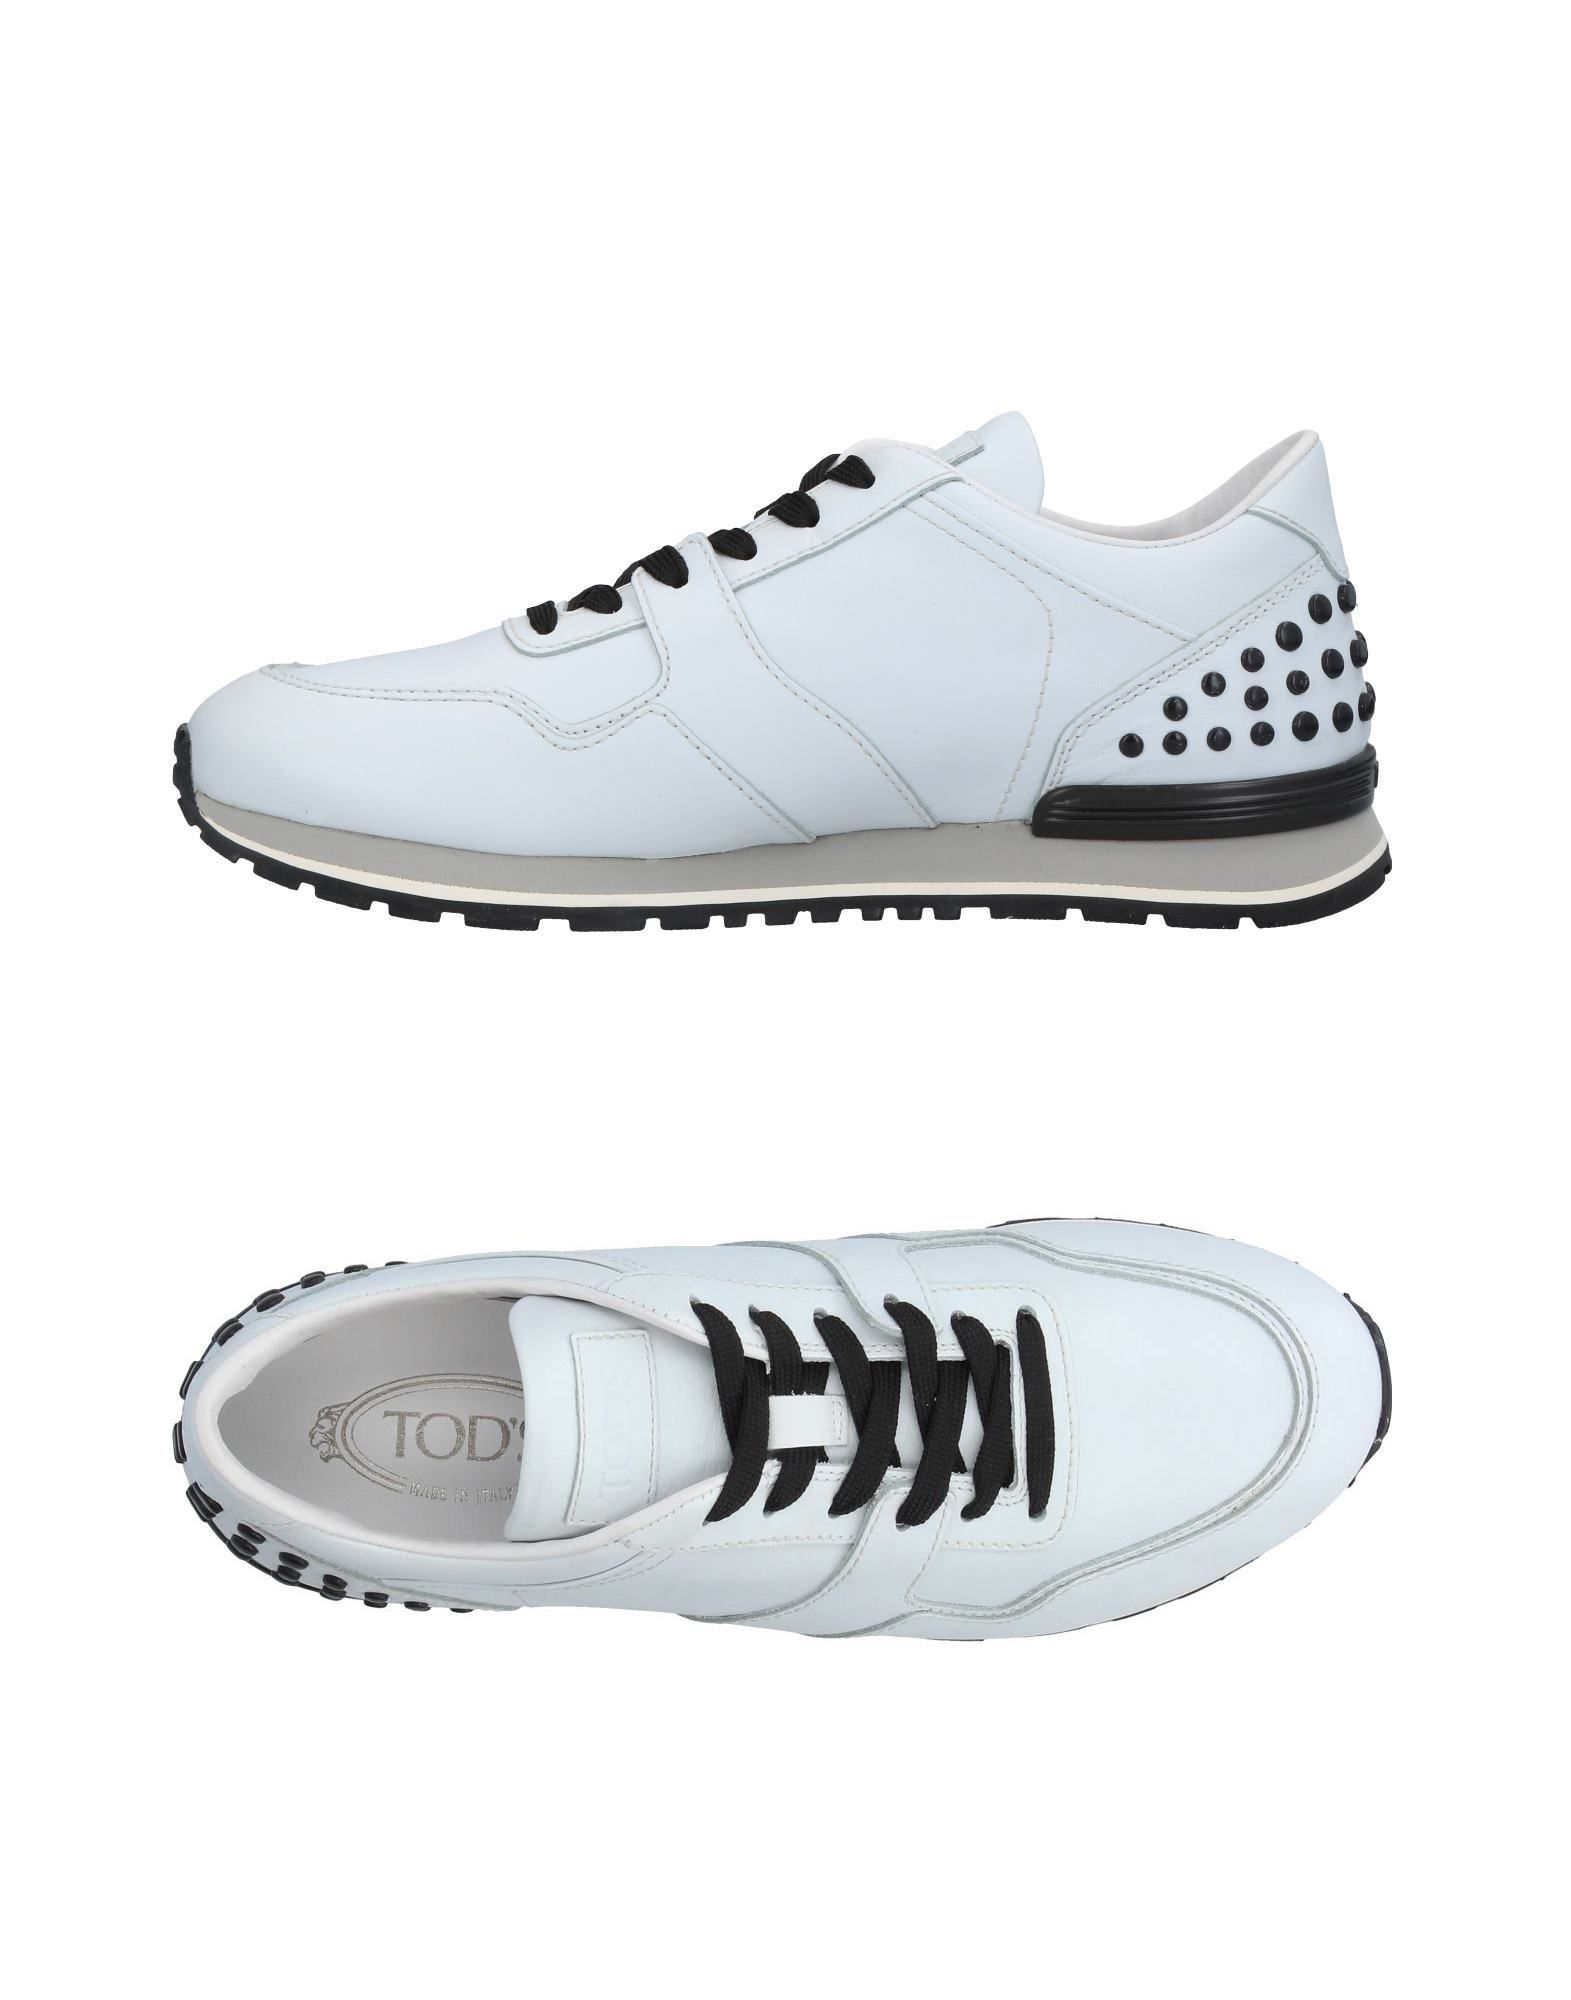 Sneakers Tods Homme - Sneakers Tods sur